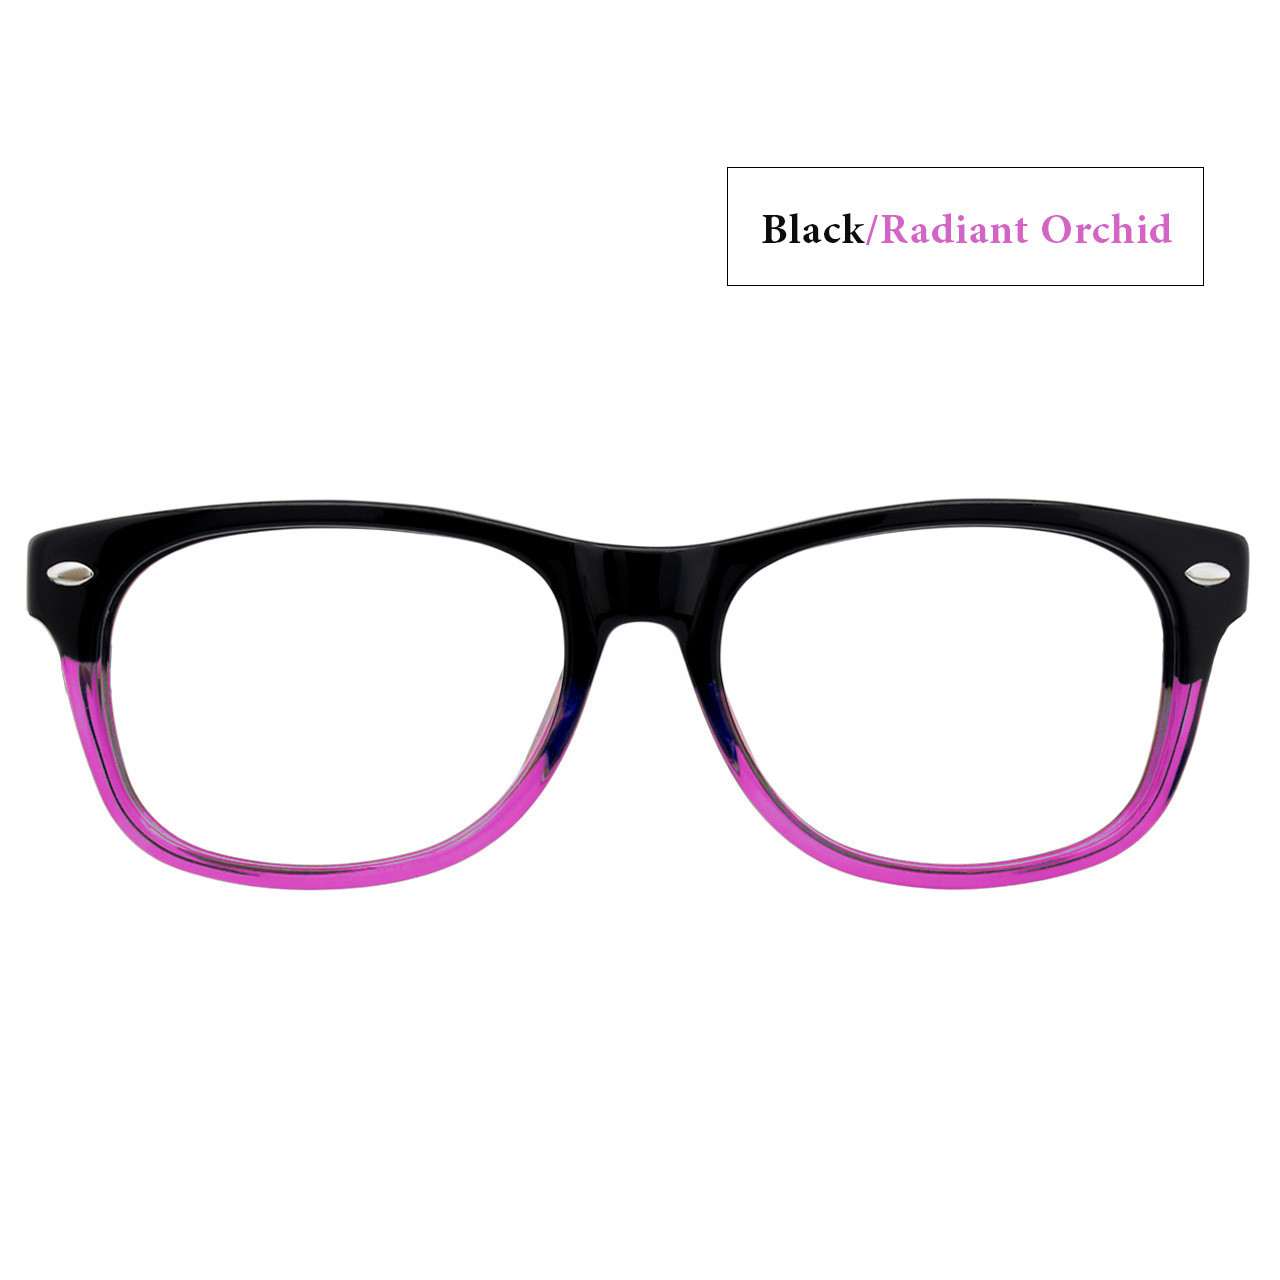 Black/Radiant Orchid with Black Temples